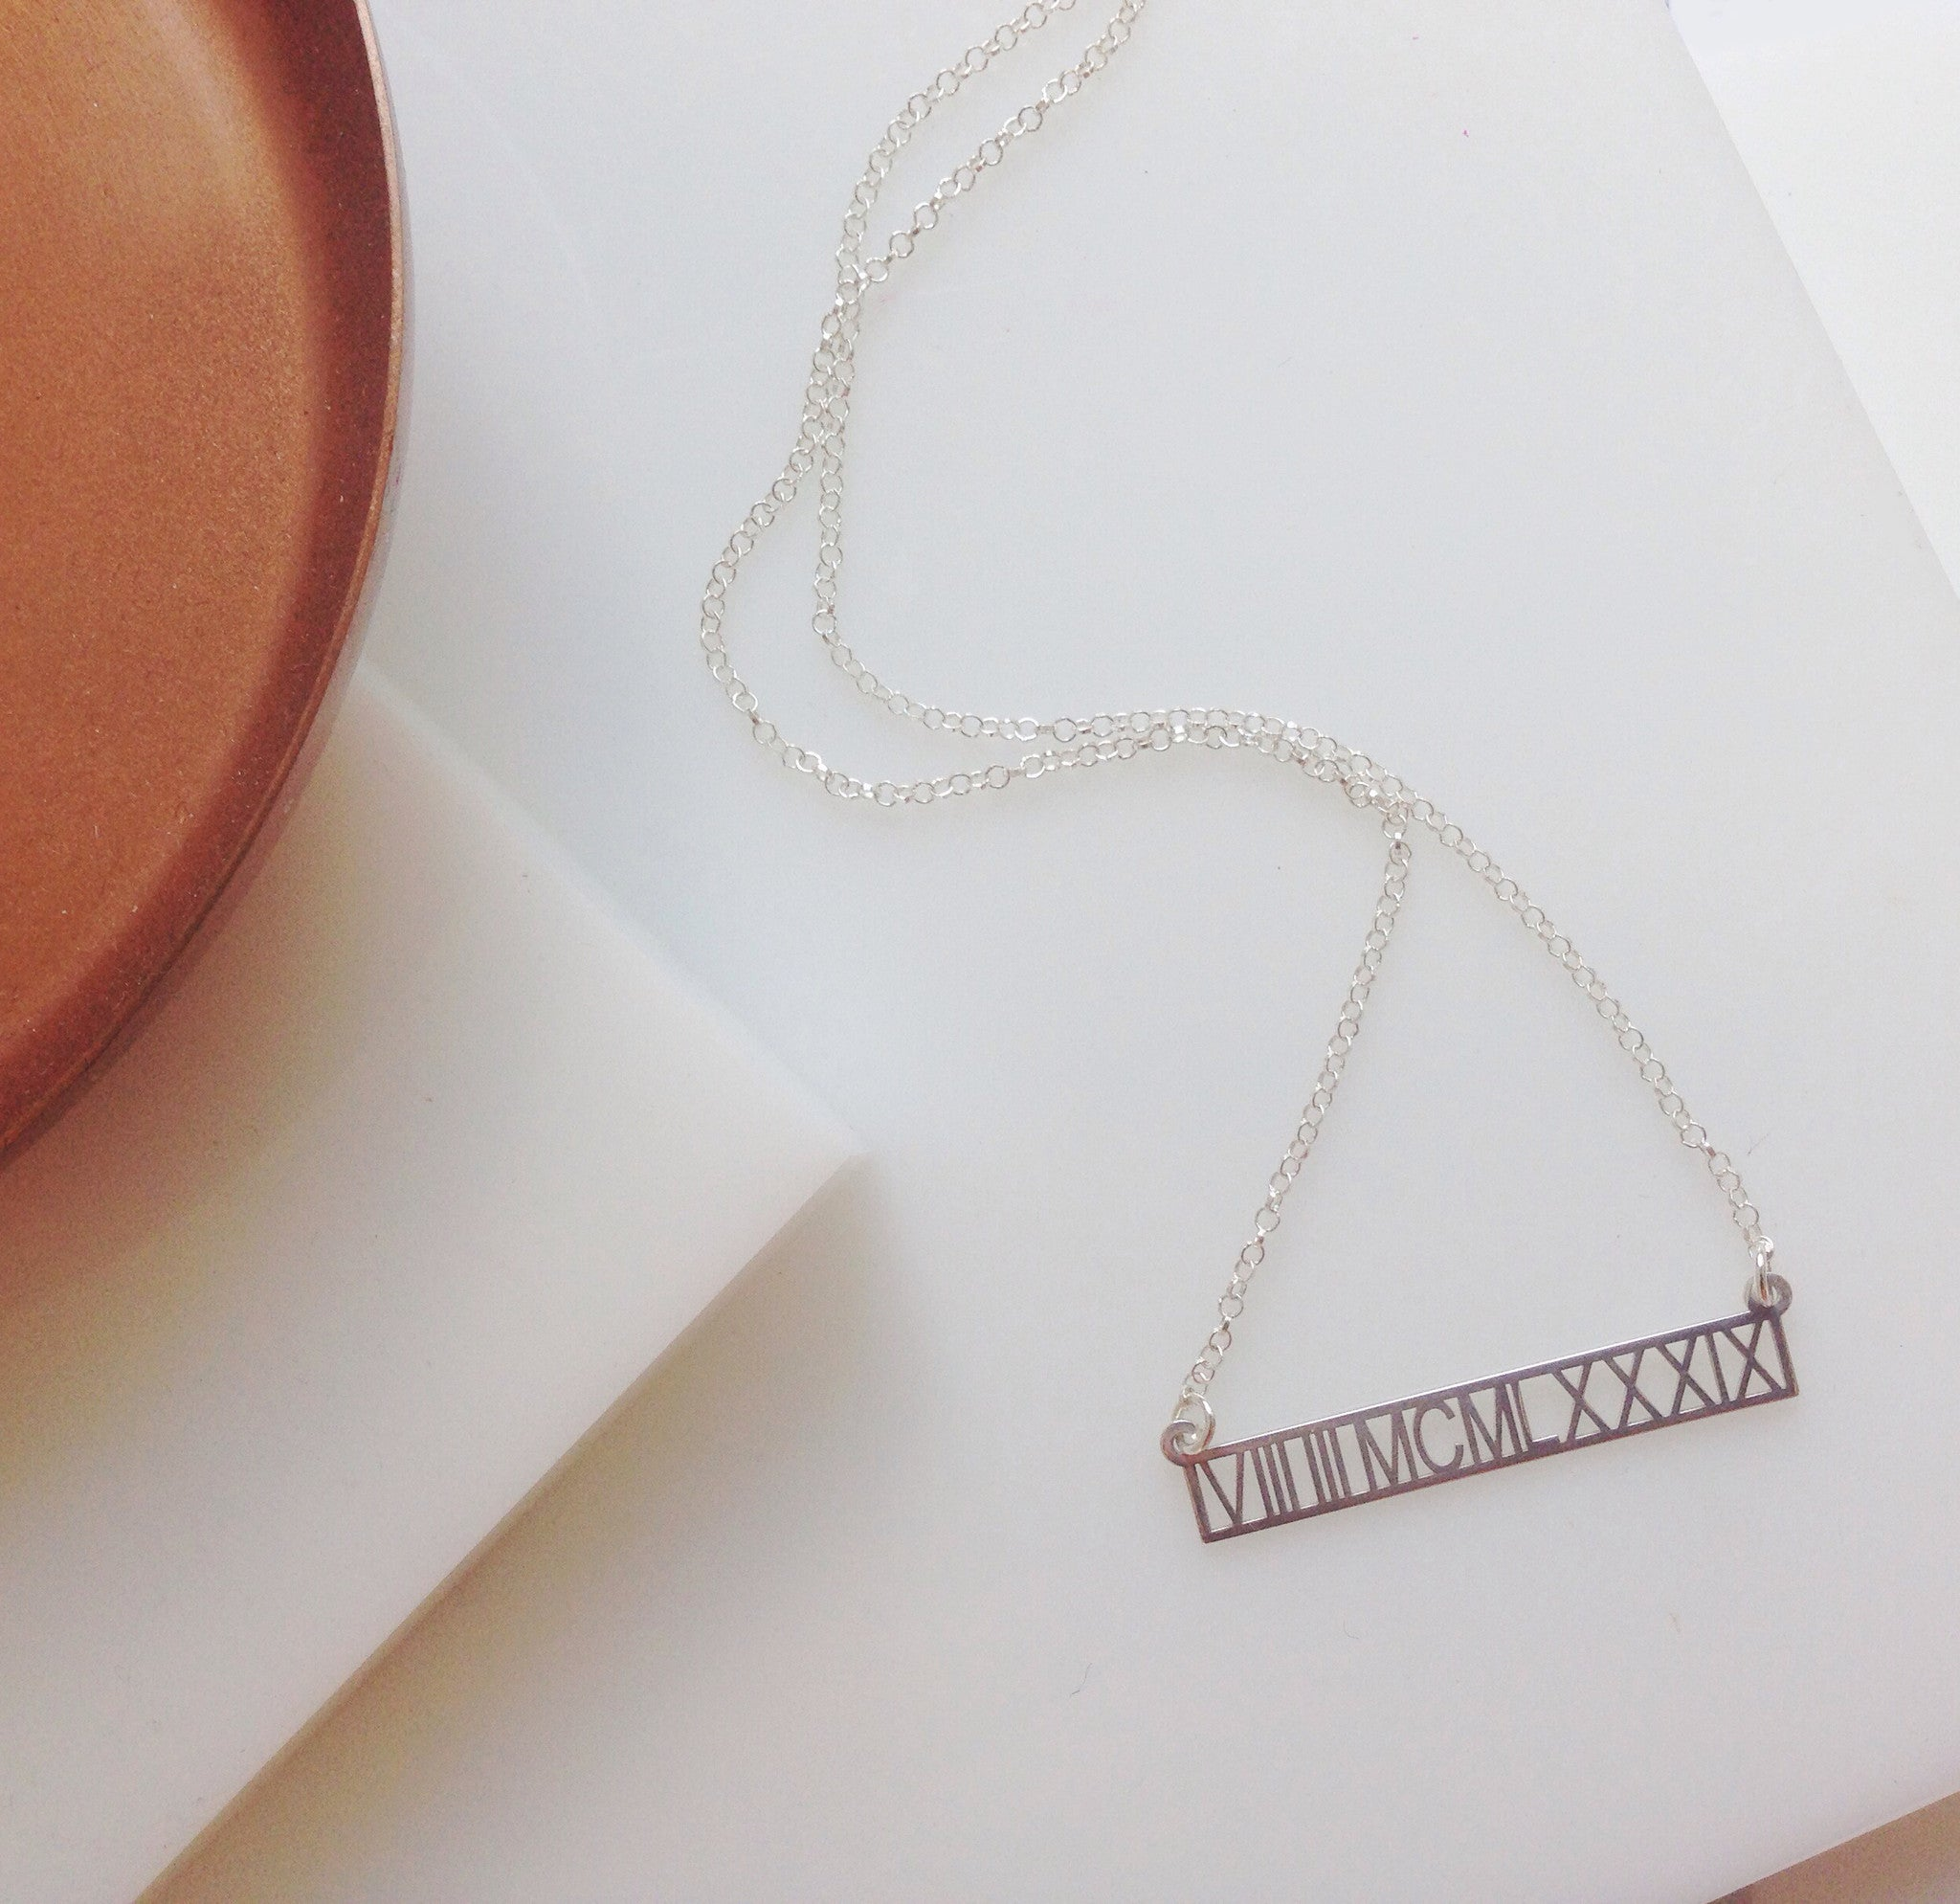 Special Date Roman Numeral Necklace